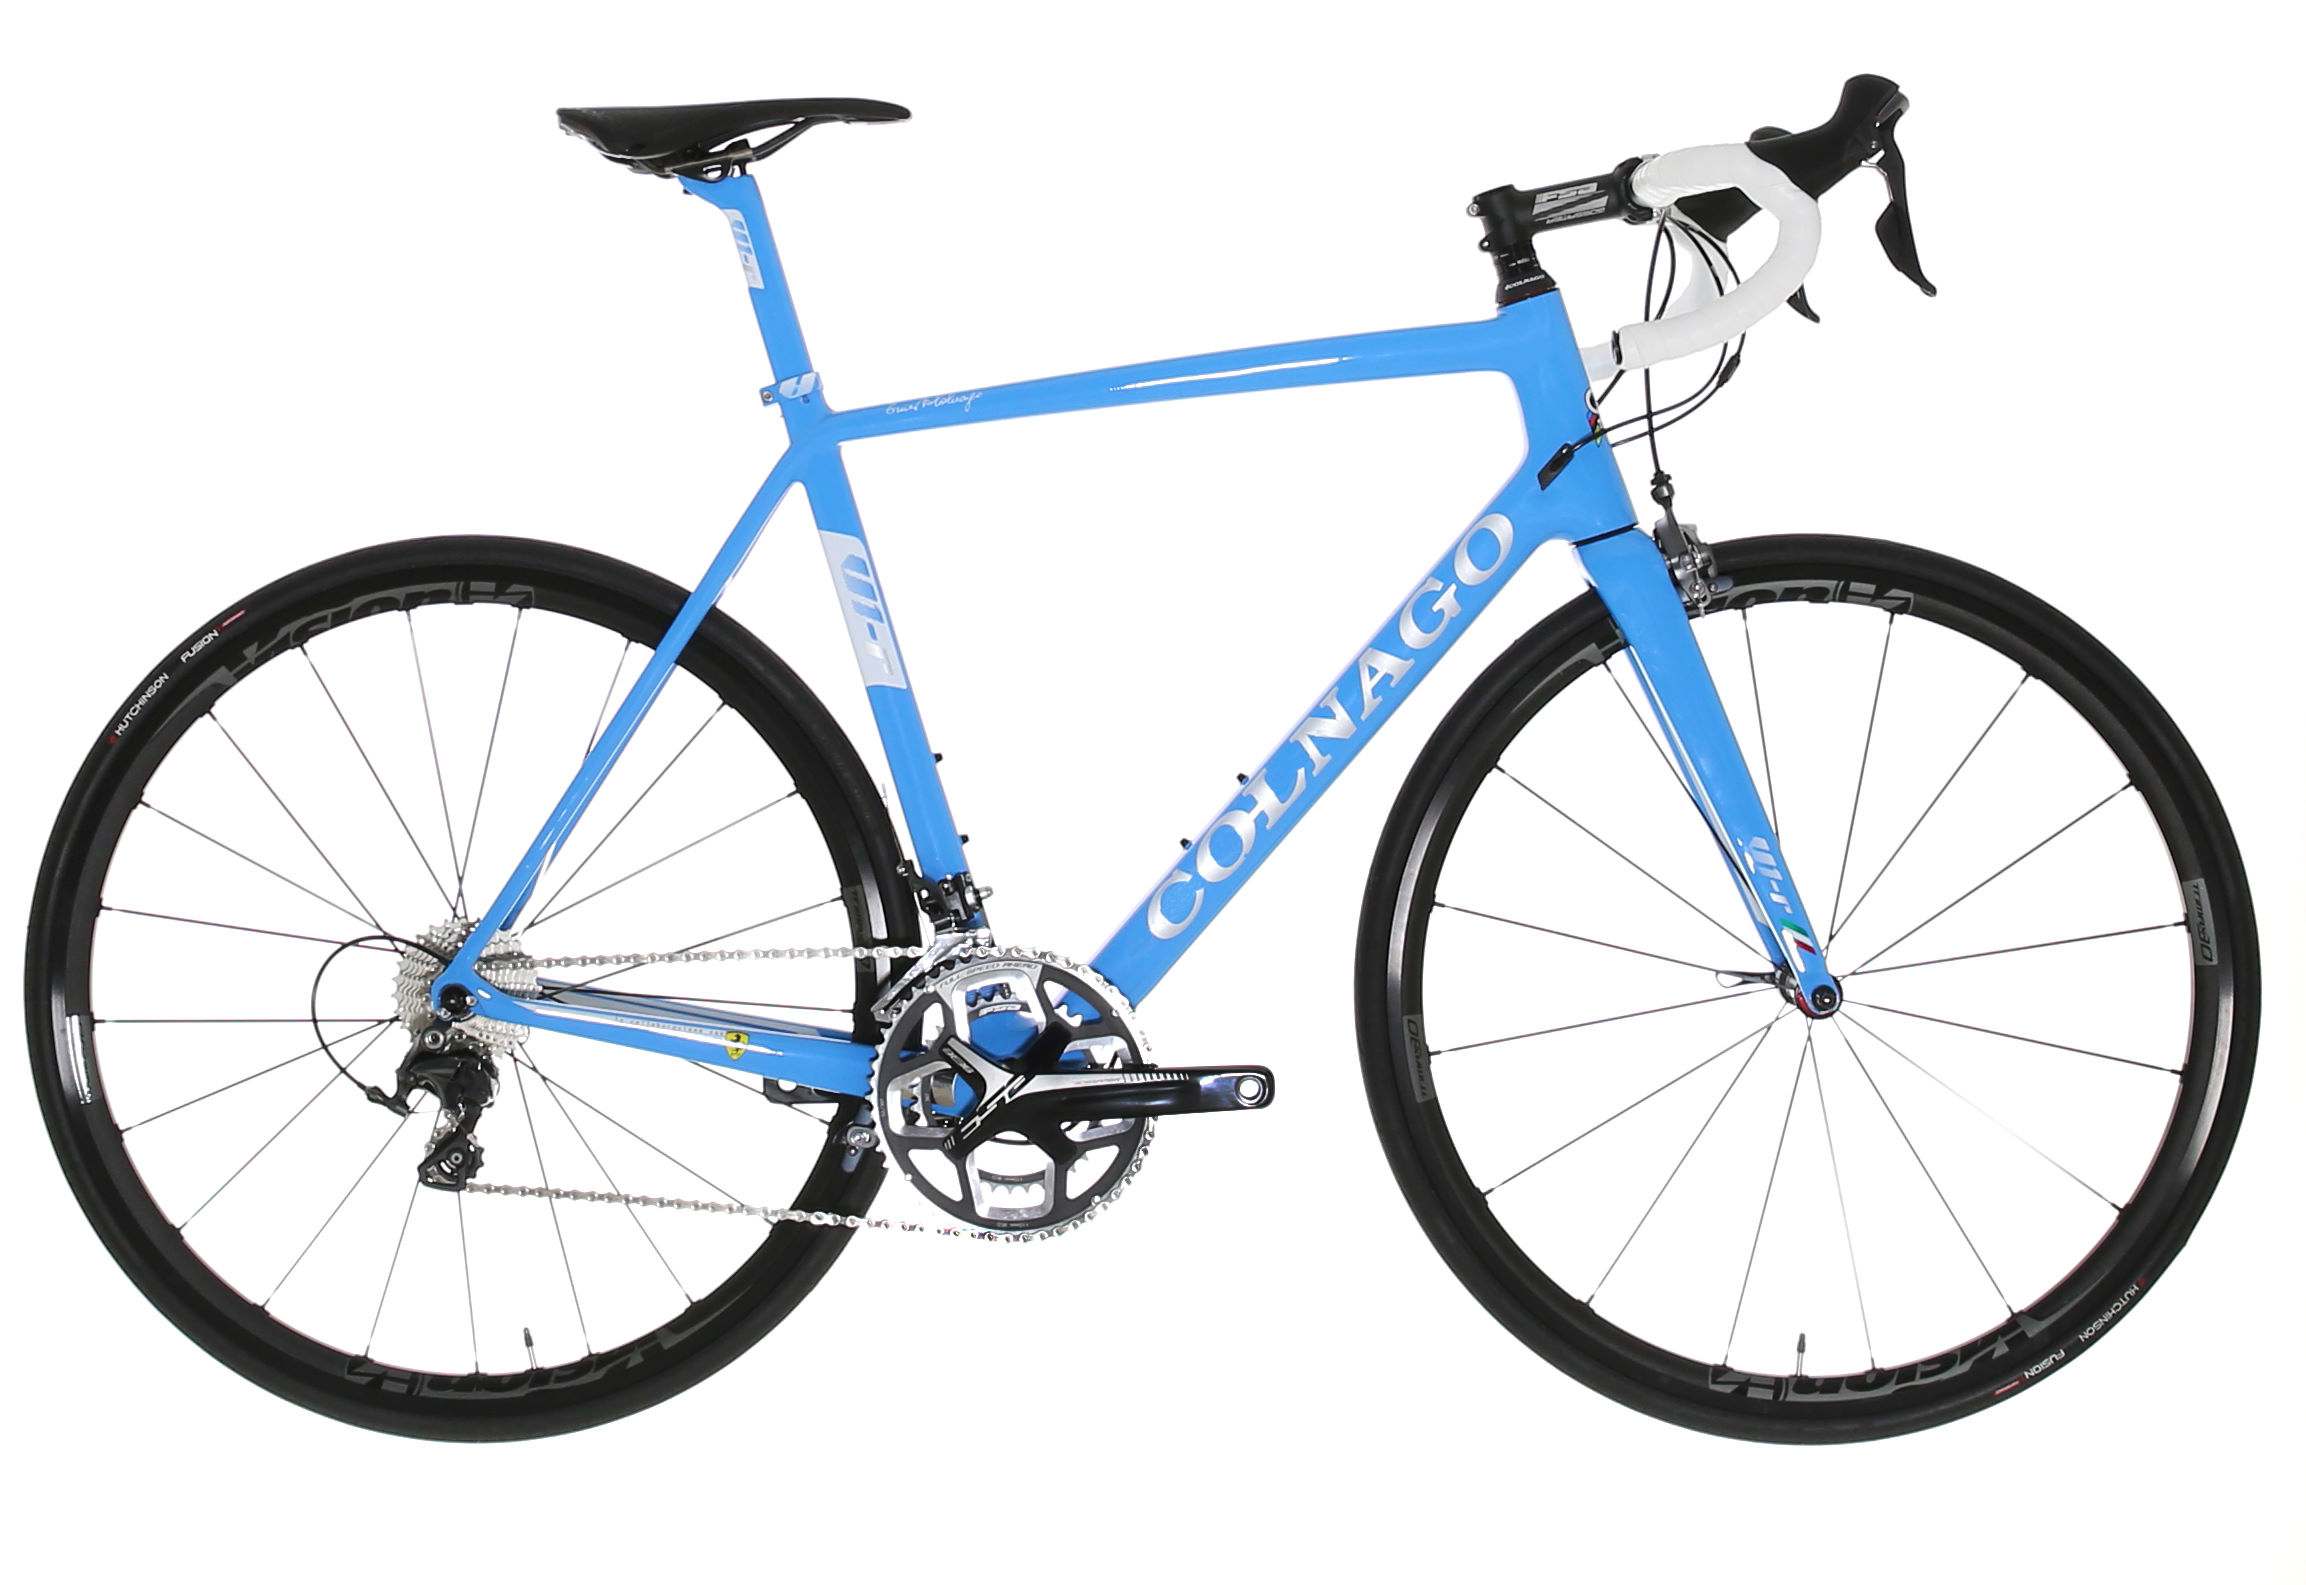 Colnago V1 r Colour Ultegra 2016 Road Bike Road Bikes Blue Blue V1RL 42S UNLB?w=2000&h=2000&a=7 wiggle colnago v1 r (ultegra 2016) road bike road bikes  at n-0.co